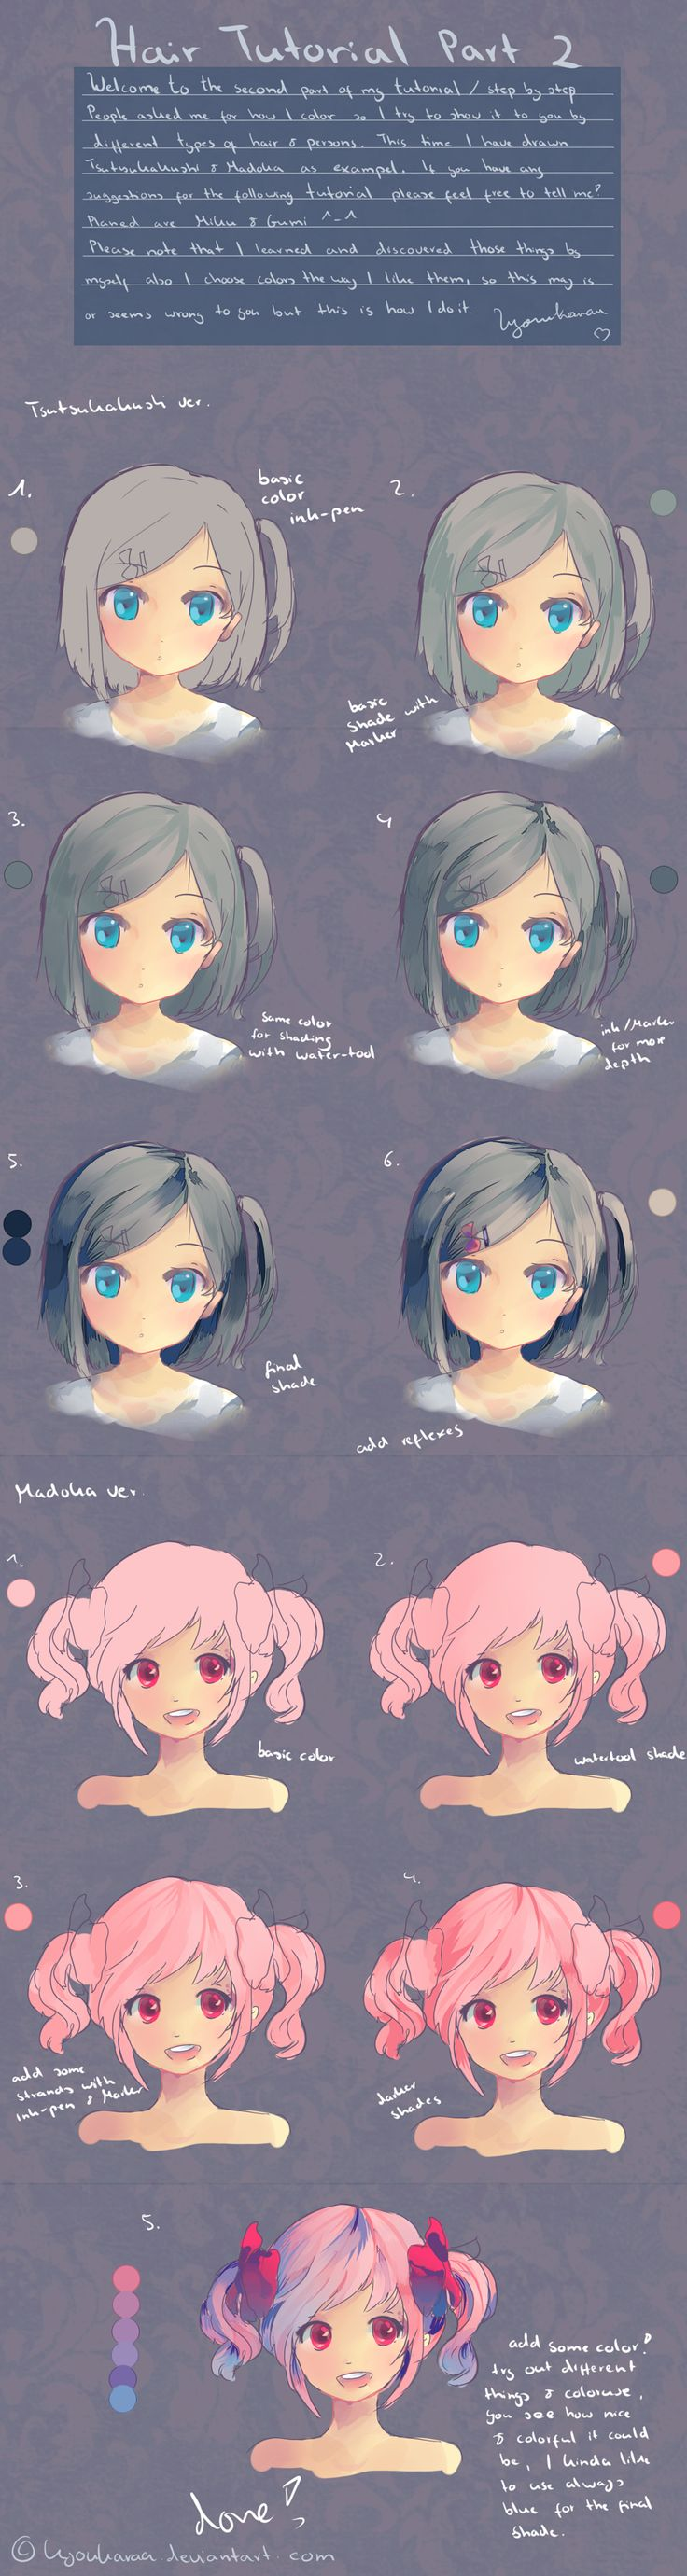 Hair Tutorial Part 2 by KyouKaraa.deviantart.com on @deviantART